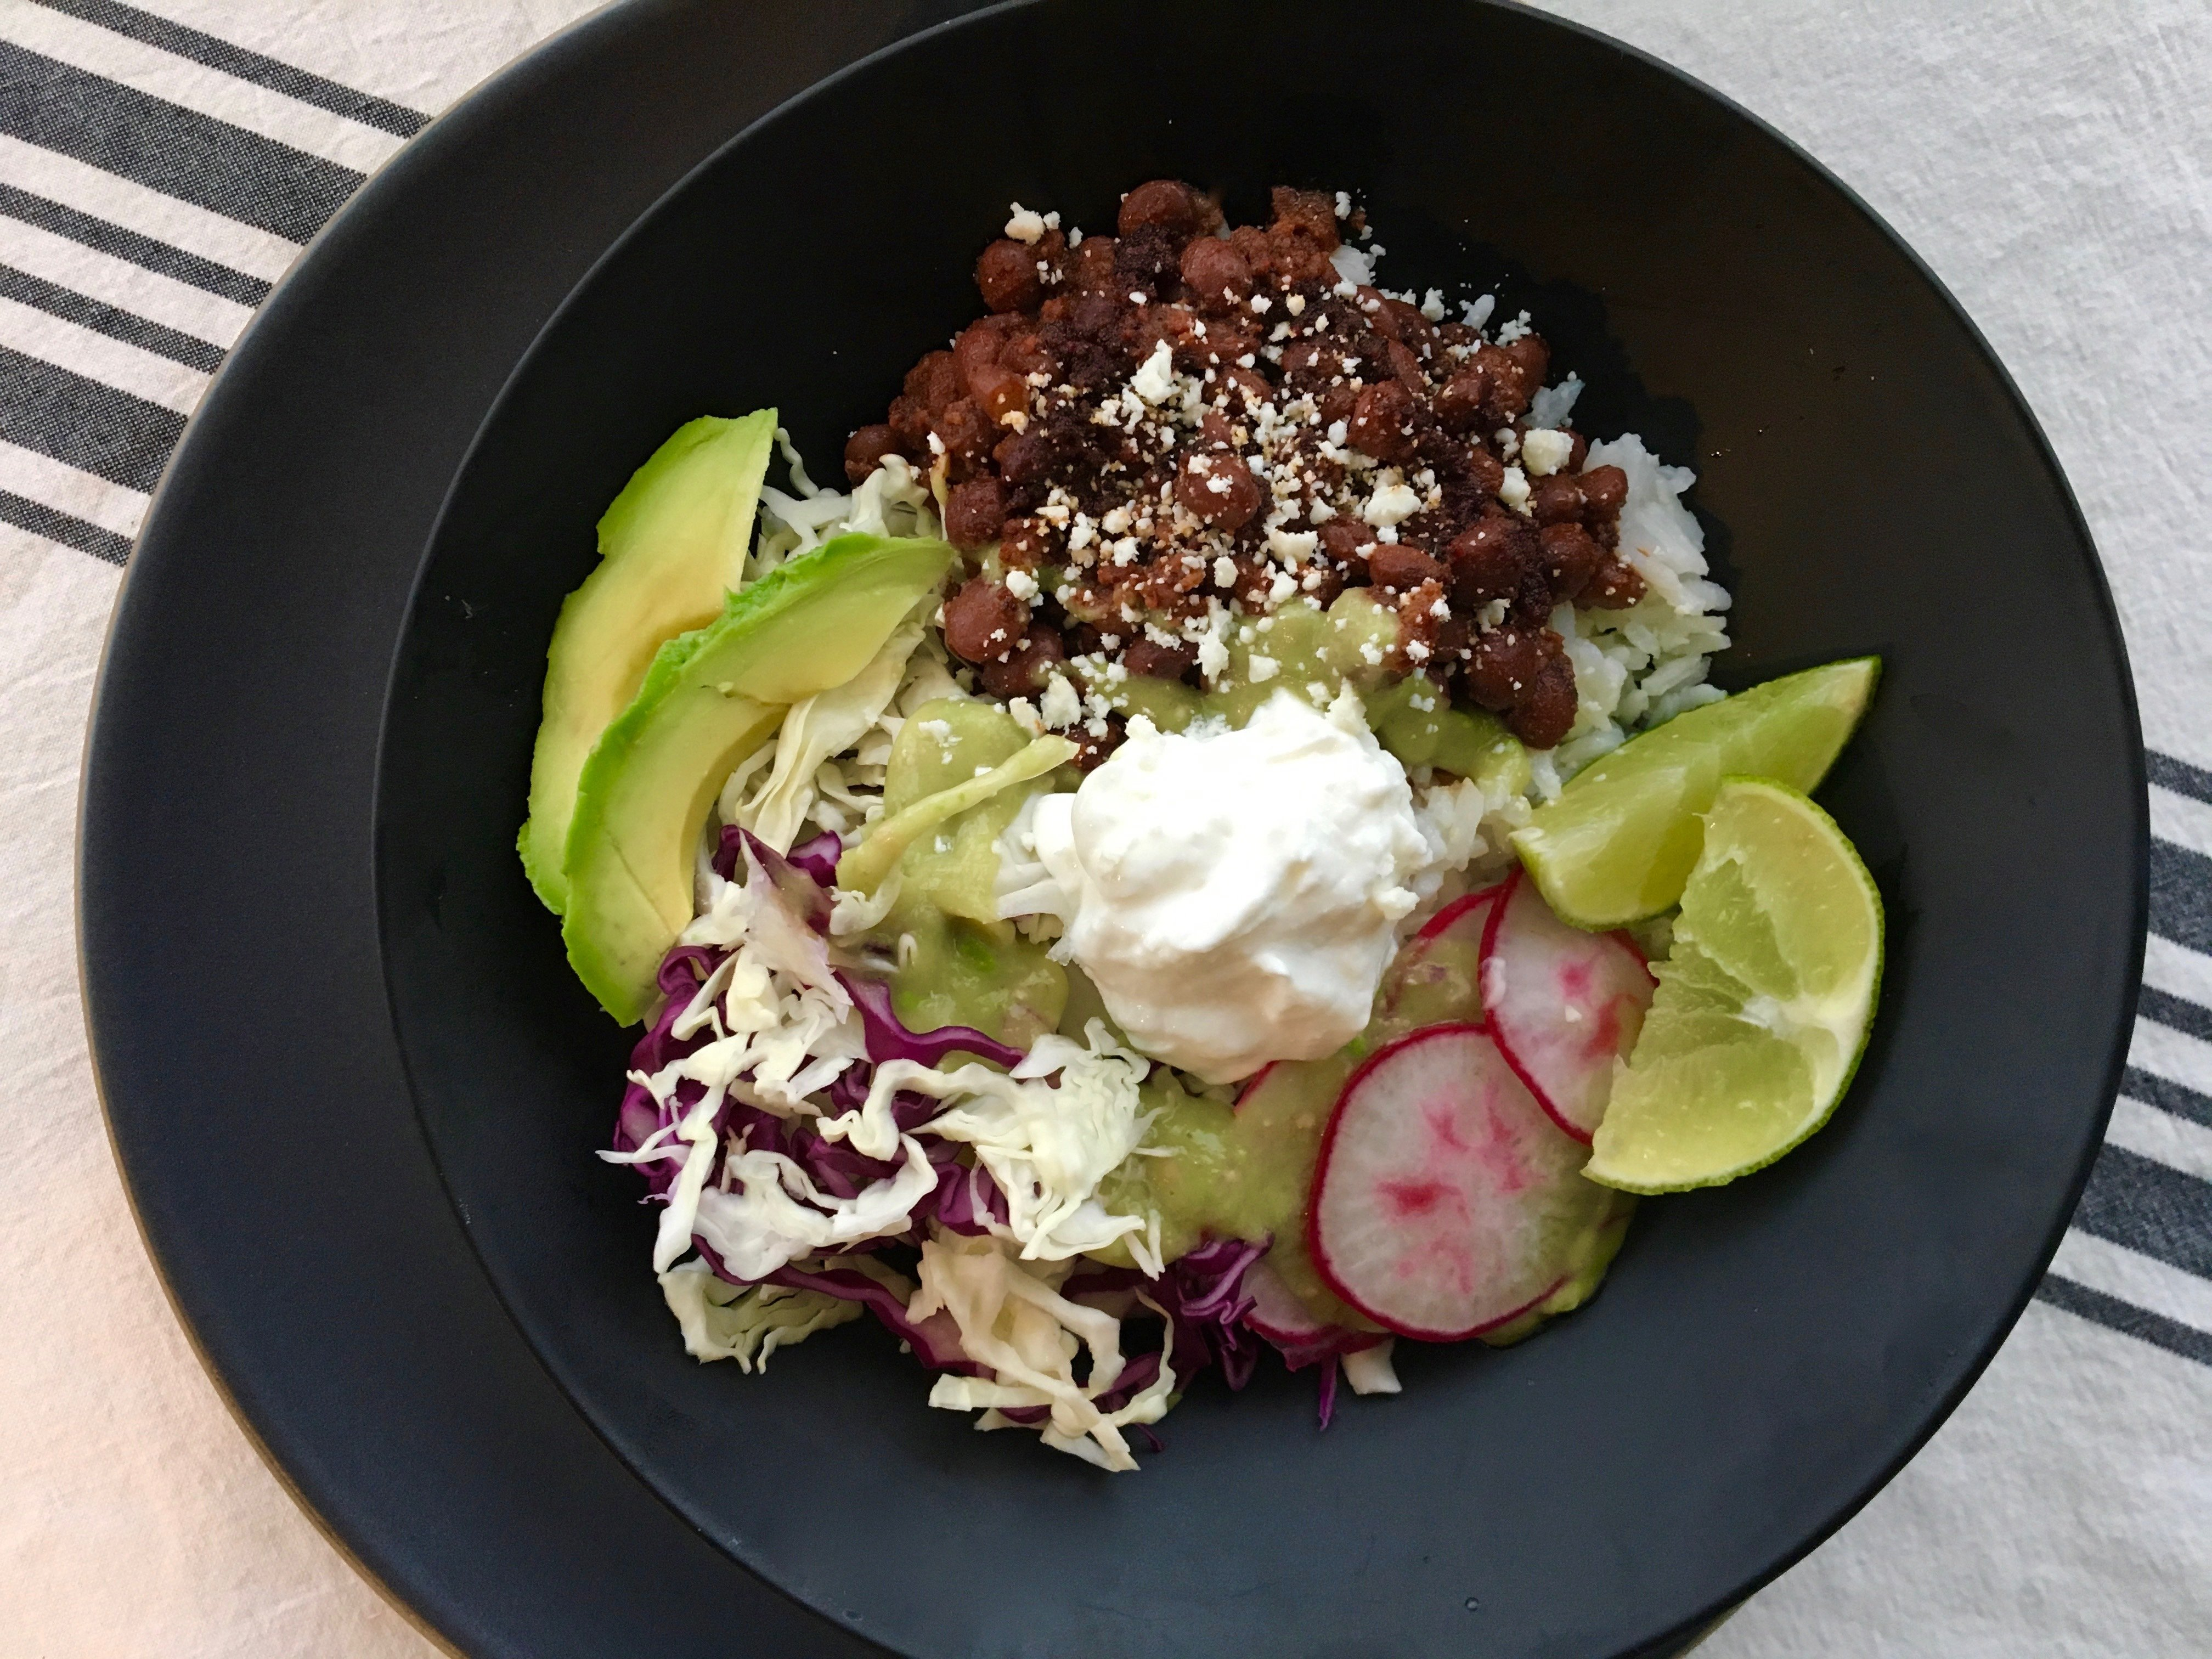 Rice bowls are one of the easiest and most delicious ways to tackle dinner. And this Mexican rice version with a chorizo-bean saute and avocado salsa is sensational. (A Little Yumminess)